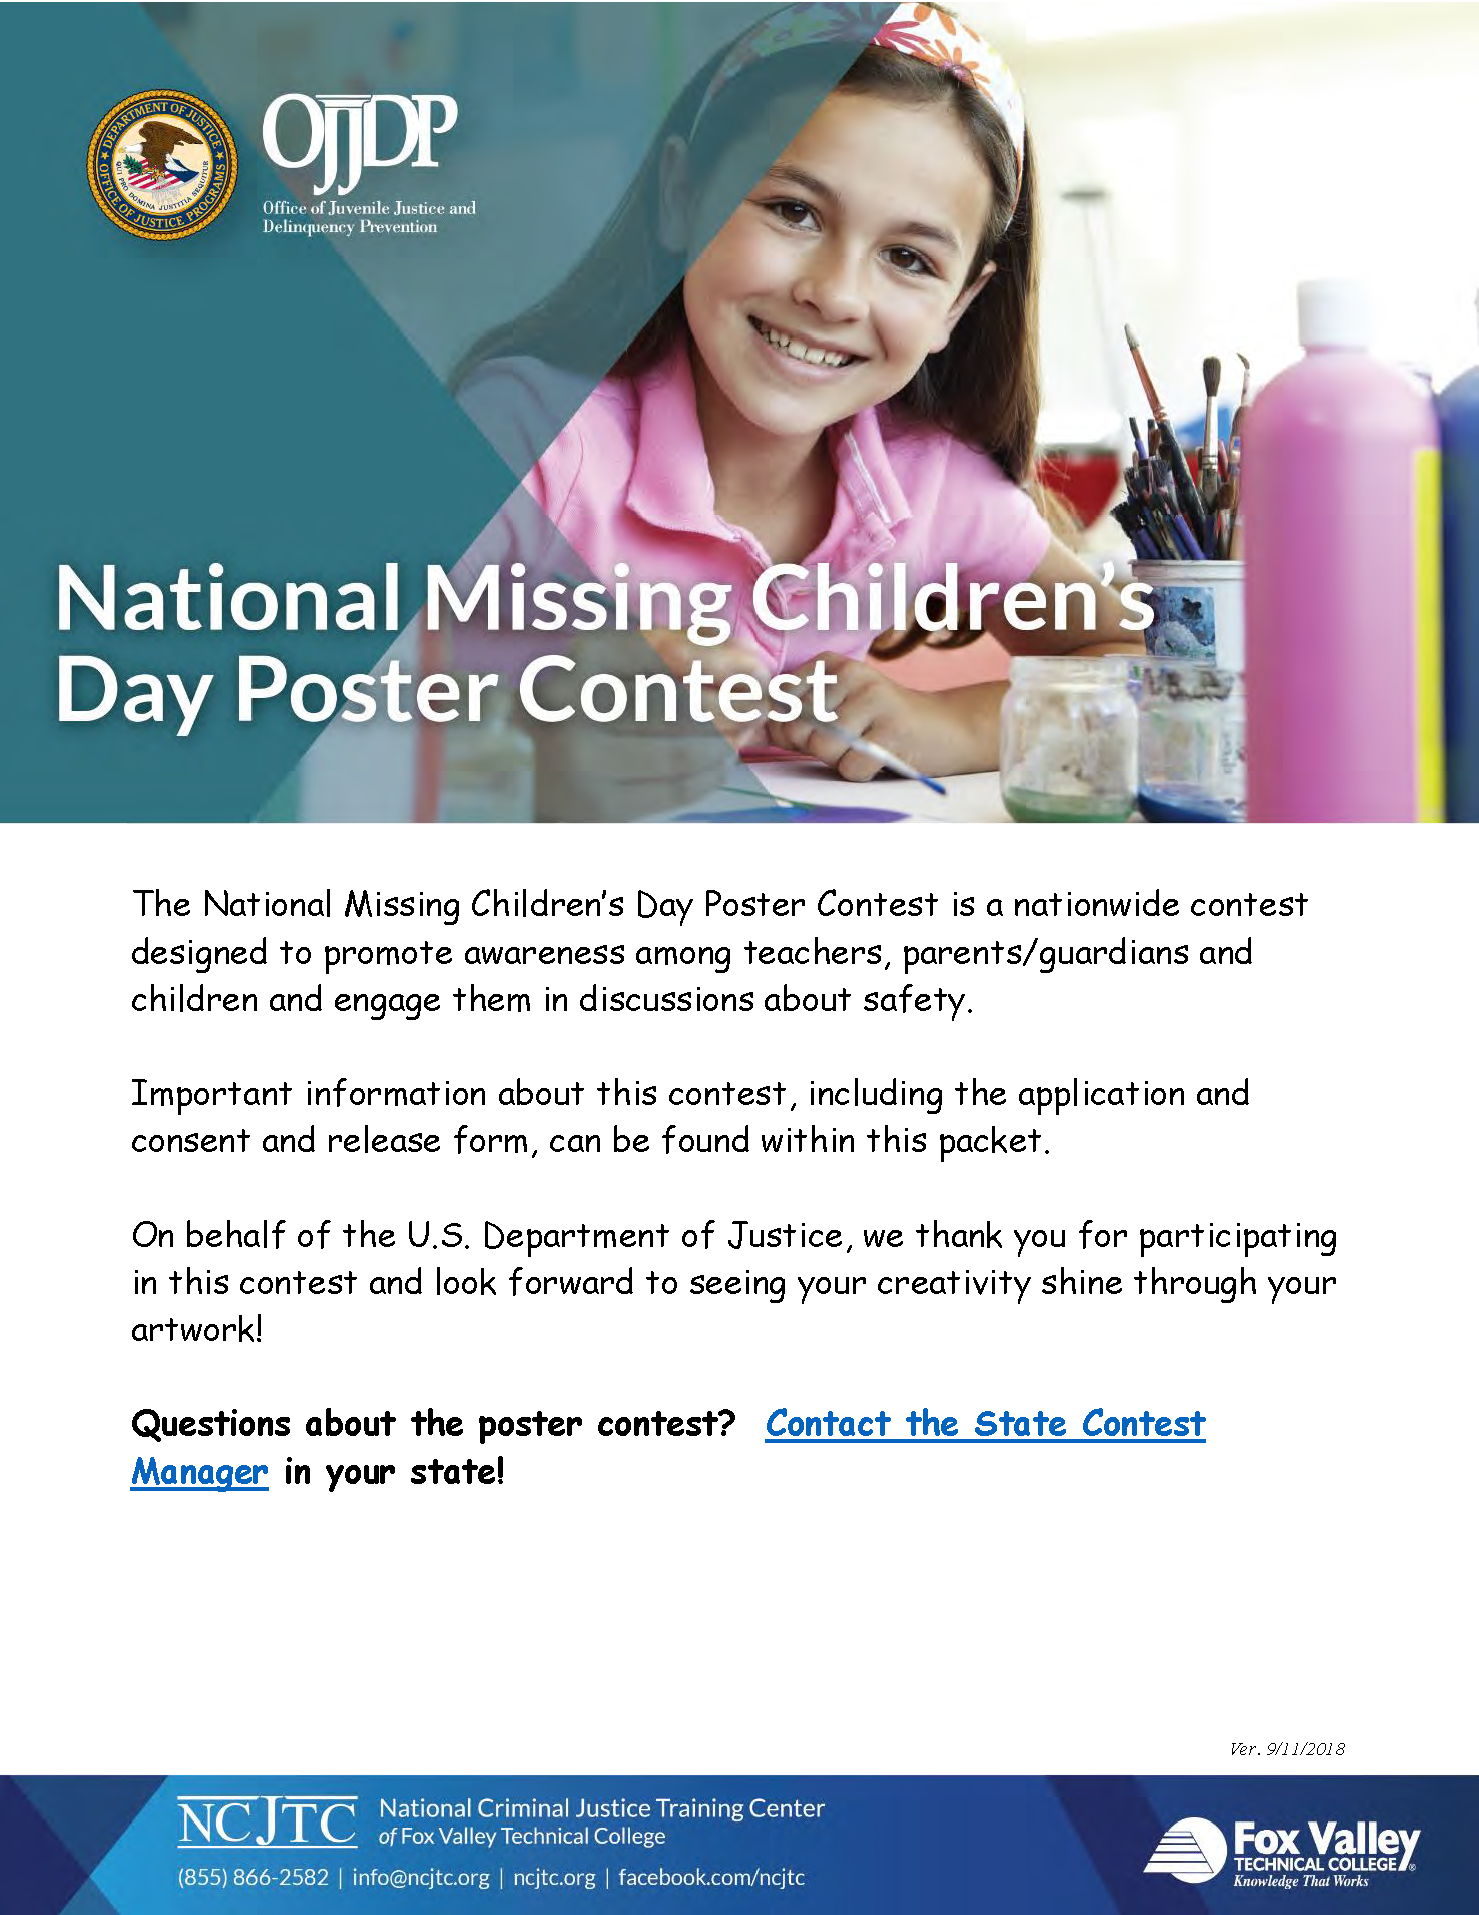 Missing Children's Day Poster Contest Packet